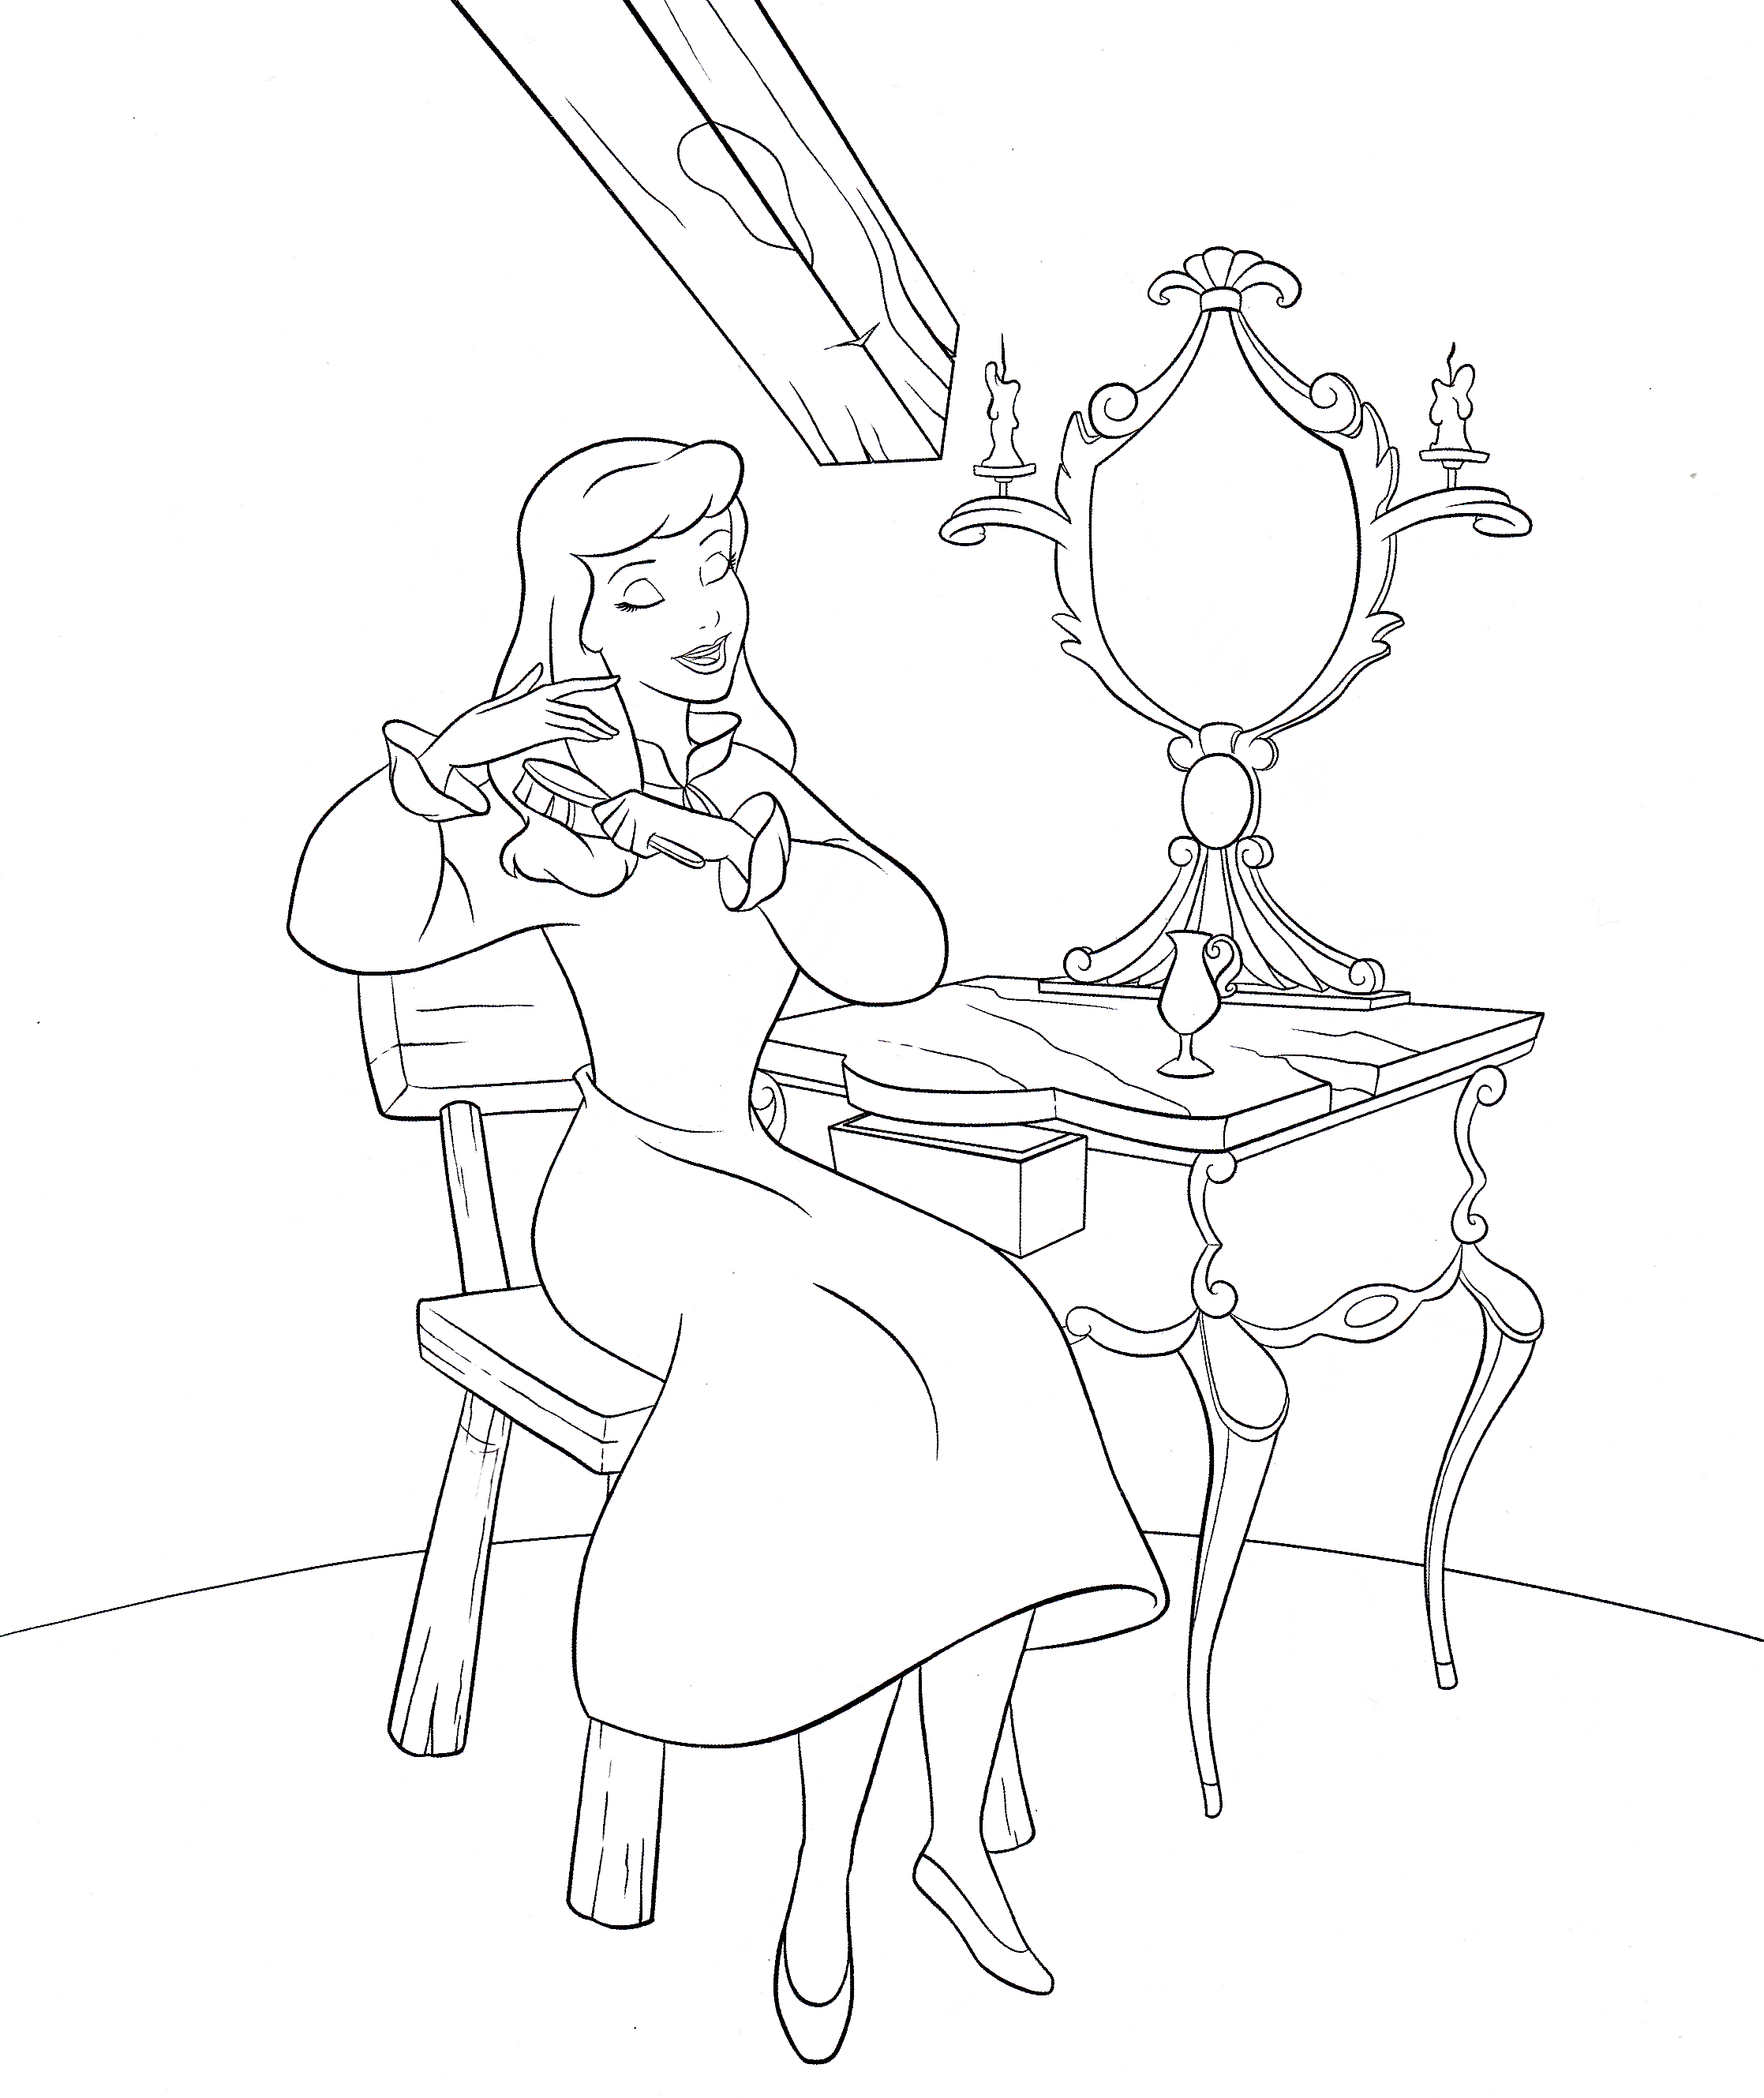 The Little Mermaid  Ariel brushing her hair coloring page